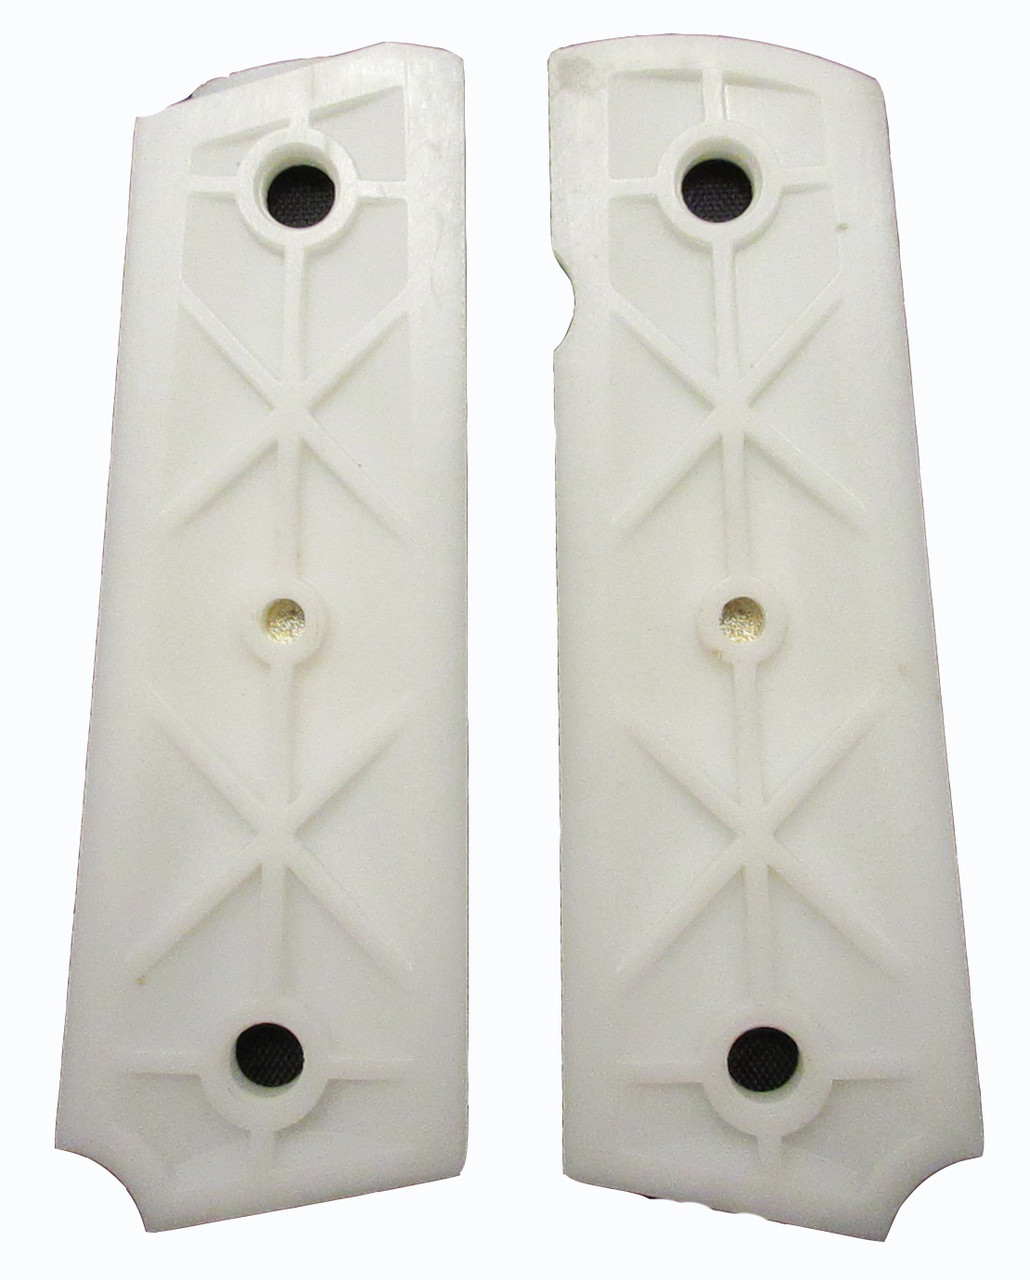 1911 Government Model US Navy Emblems Set Attractive Light Ivory Color Grips G24